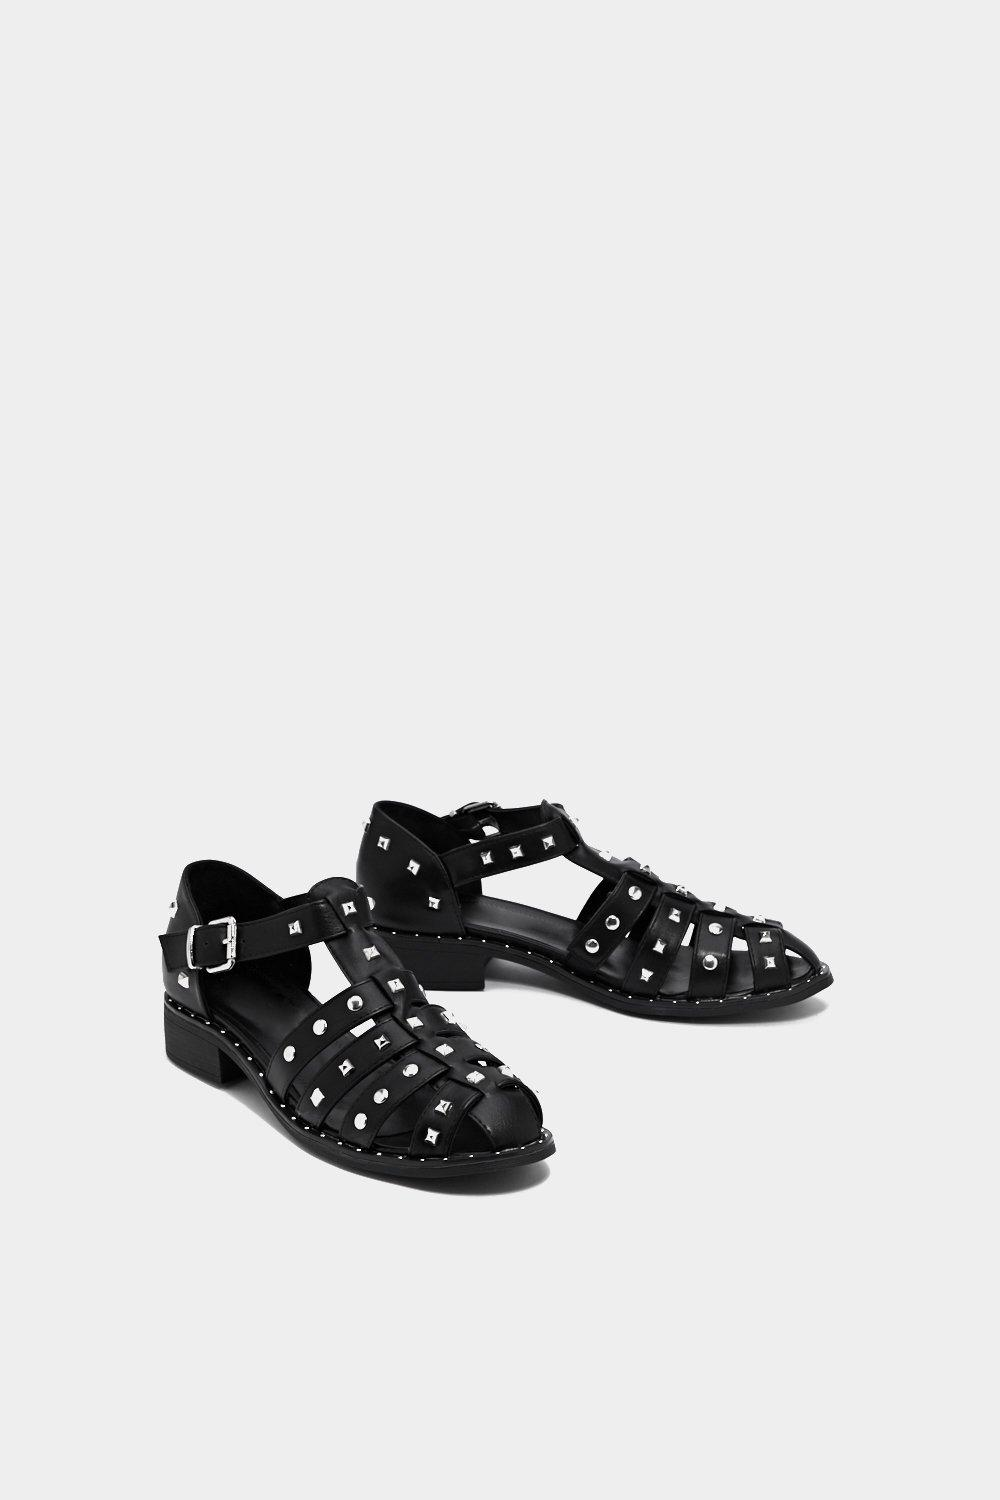 clearance largest supplier enjoy online Feeling Cagey Studded Sandal 100% guaranteed cheap online Xmuv4B